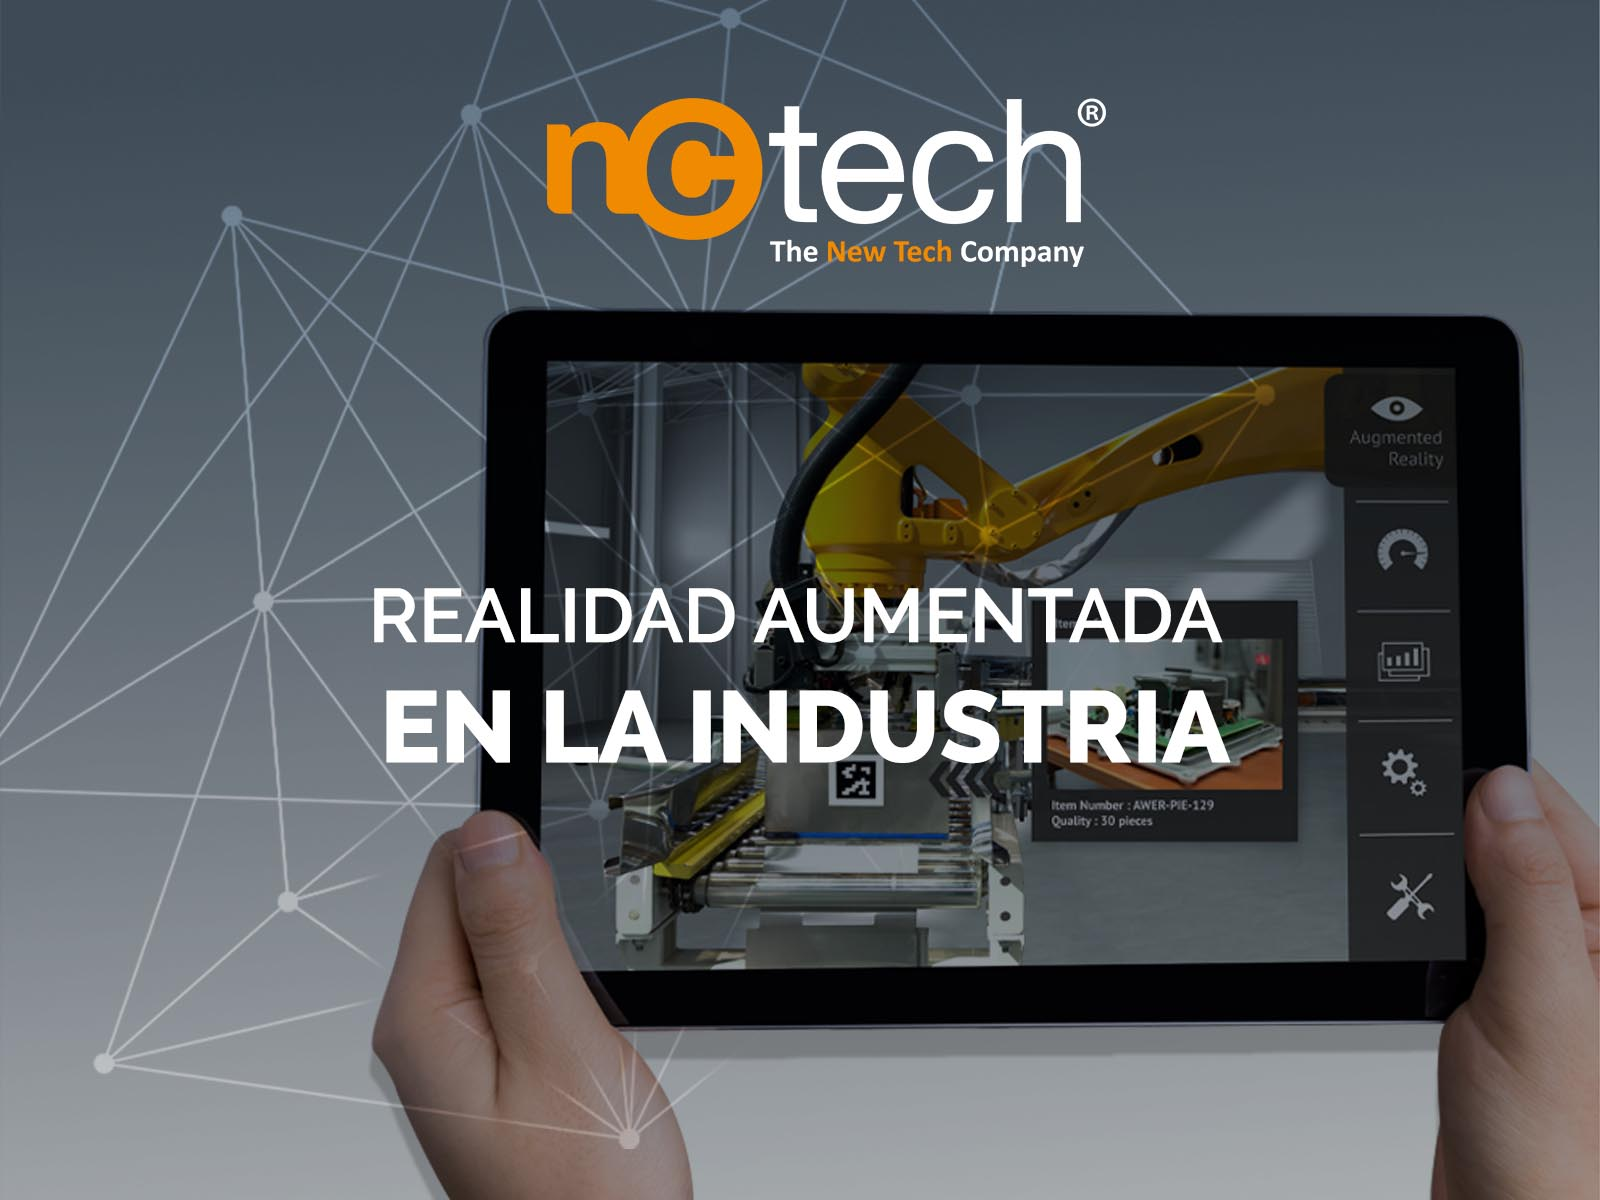 https://nctech.com.mx/wp-content/uploads/2019/11/110619_HEADER_BLOG_RAEN-LA-INDUSTRIA.jpg